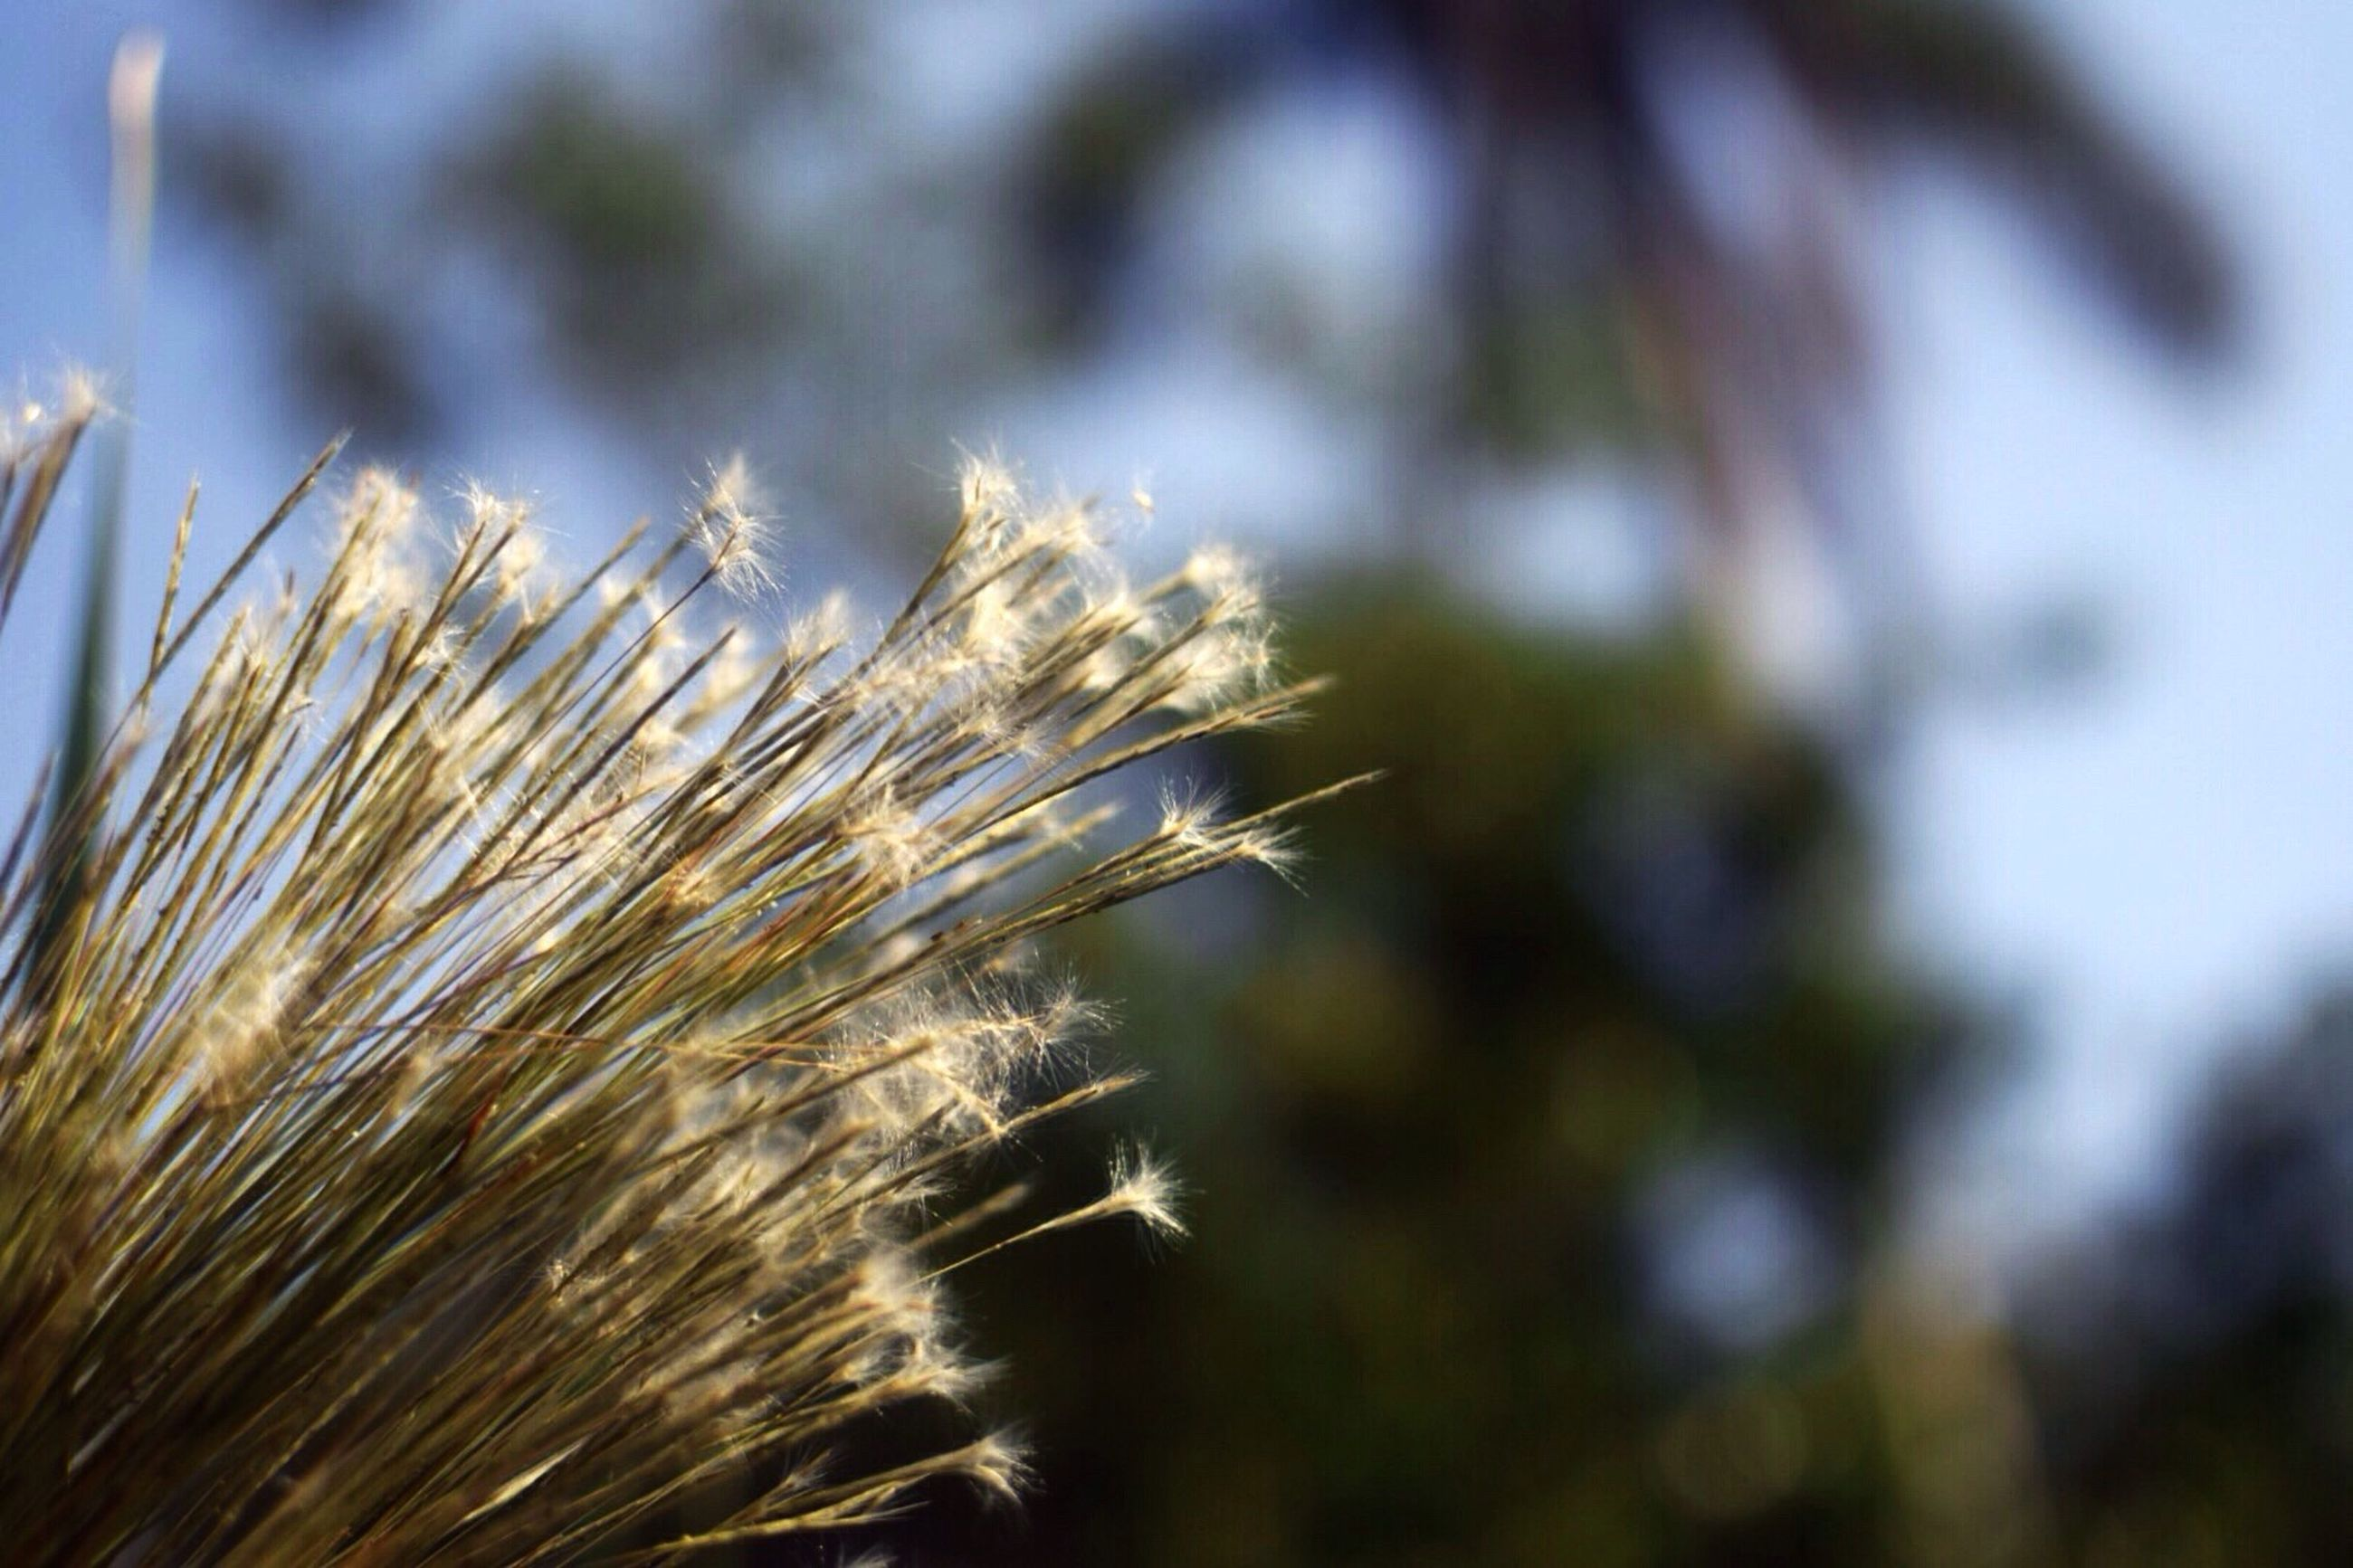 growth, close-up, focus on foreground, plant, nature, fragility, freshness, selective focus, beauty in nature, field, stem, dandelion, uncultivated, flower, day, growing, tranquility, no people, outdoors, dry